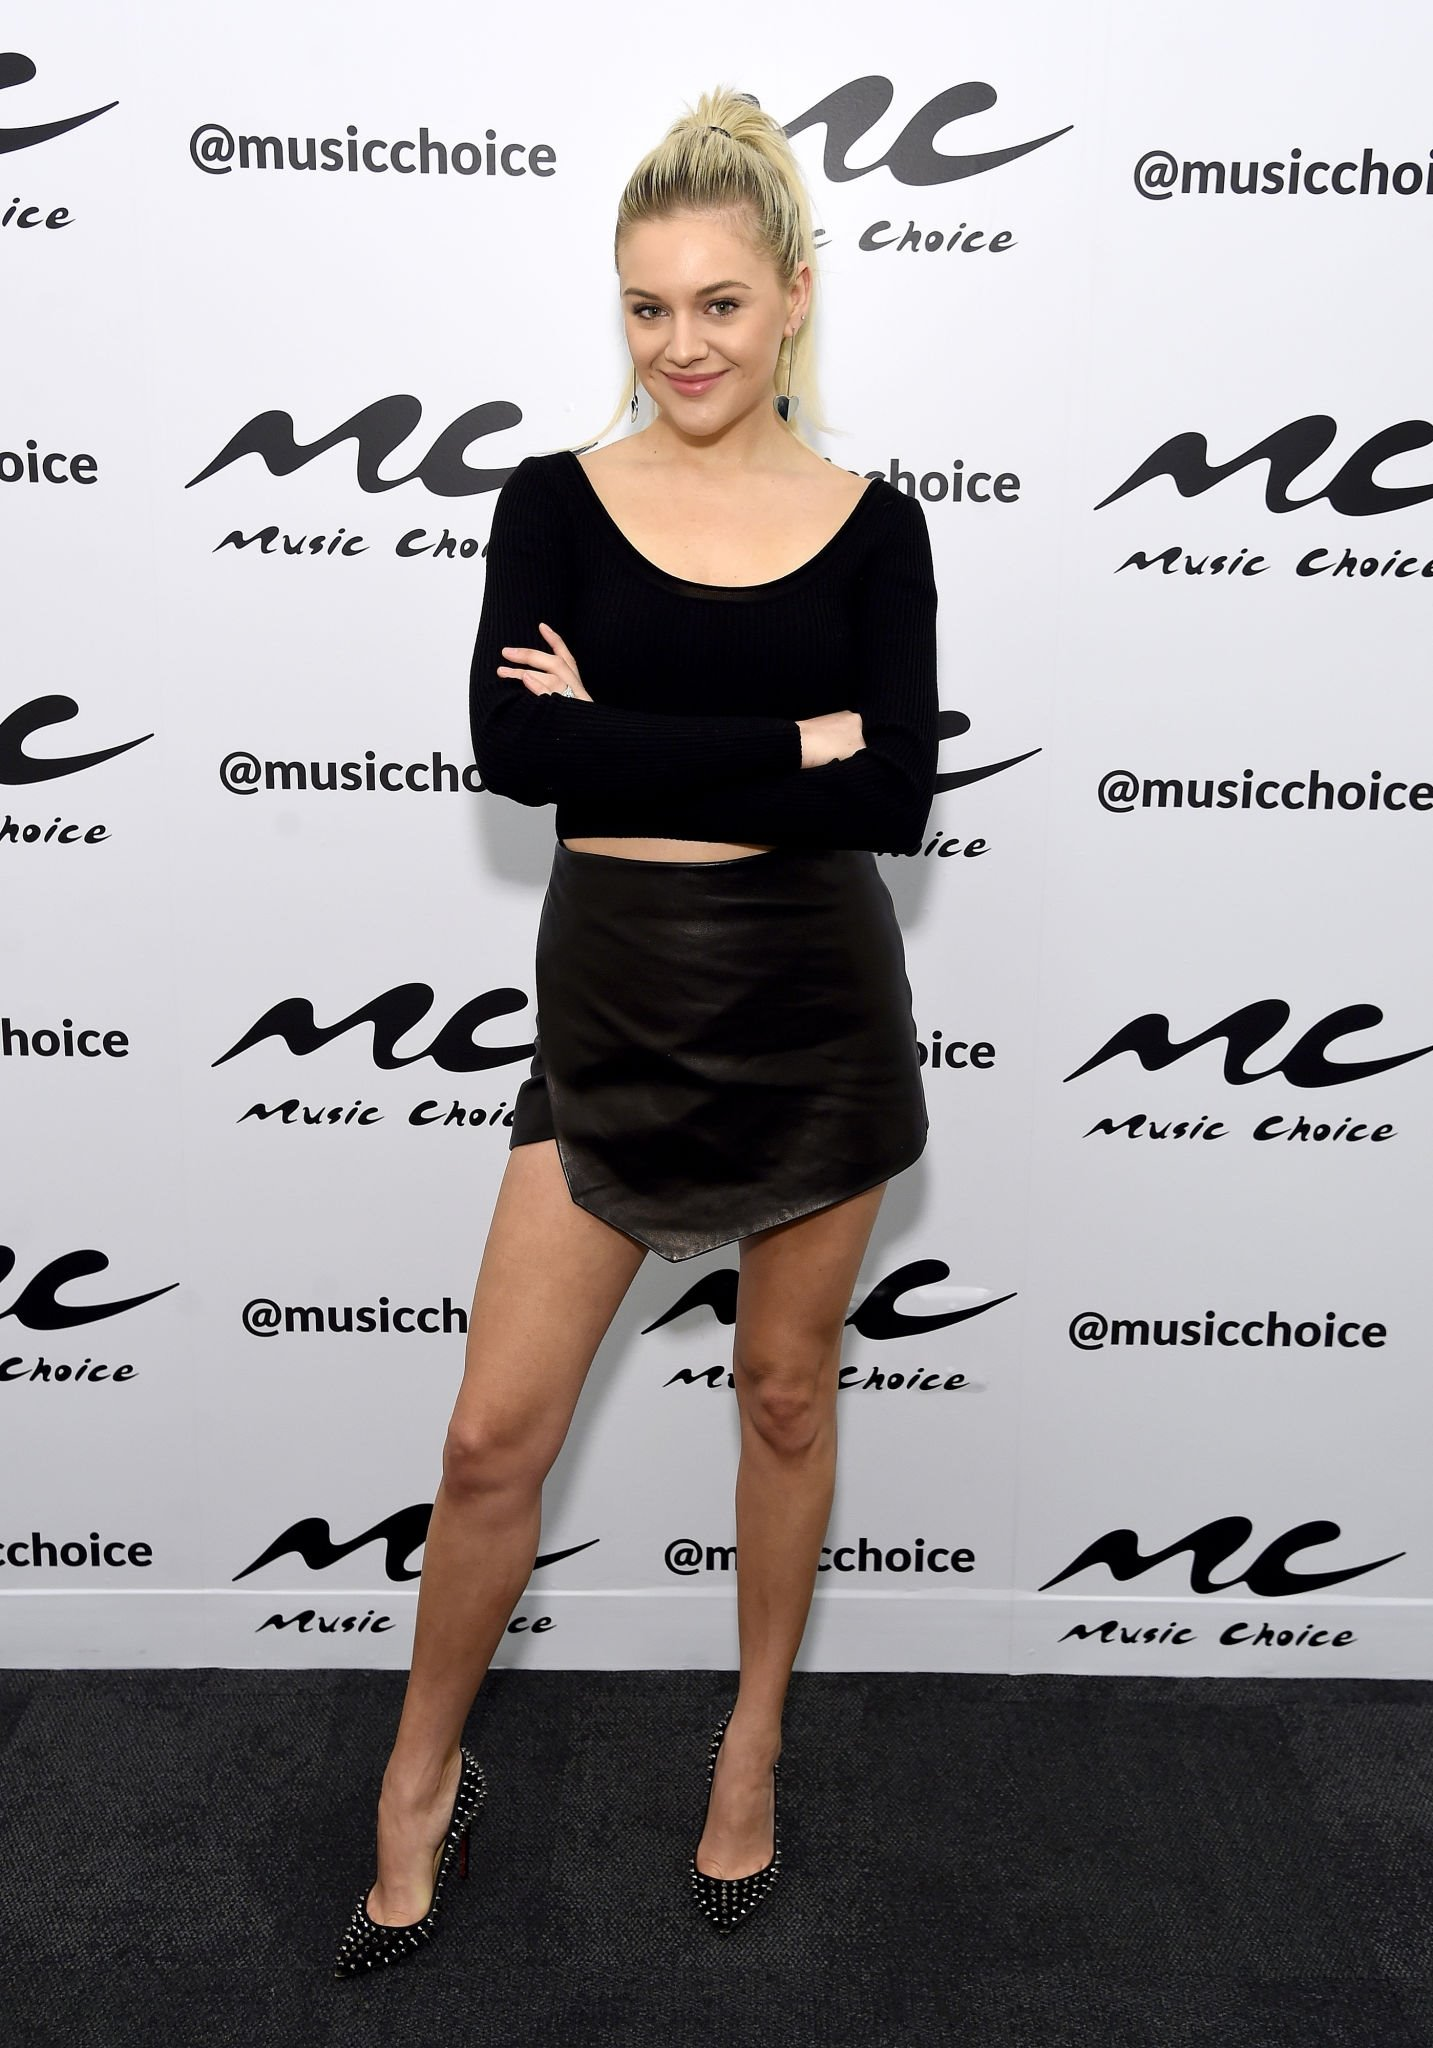 Kelsea Ballerini visits Music Choice